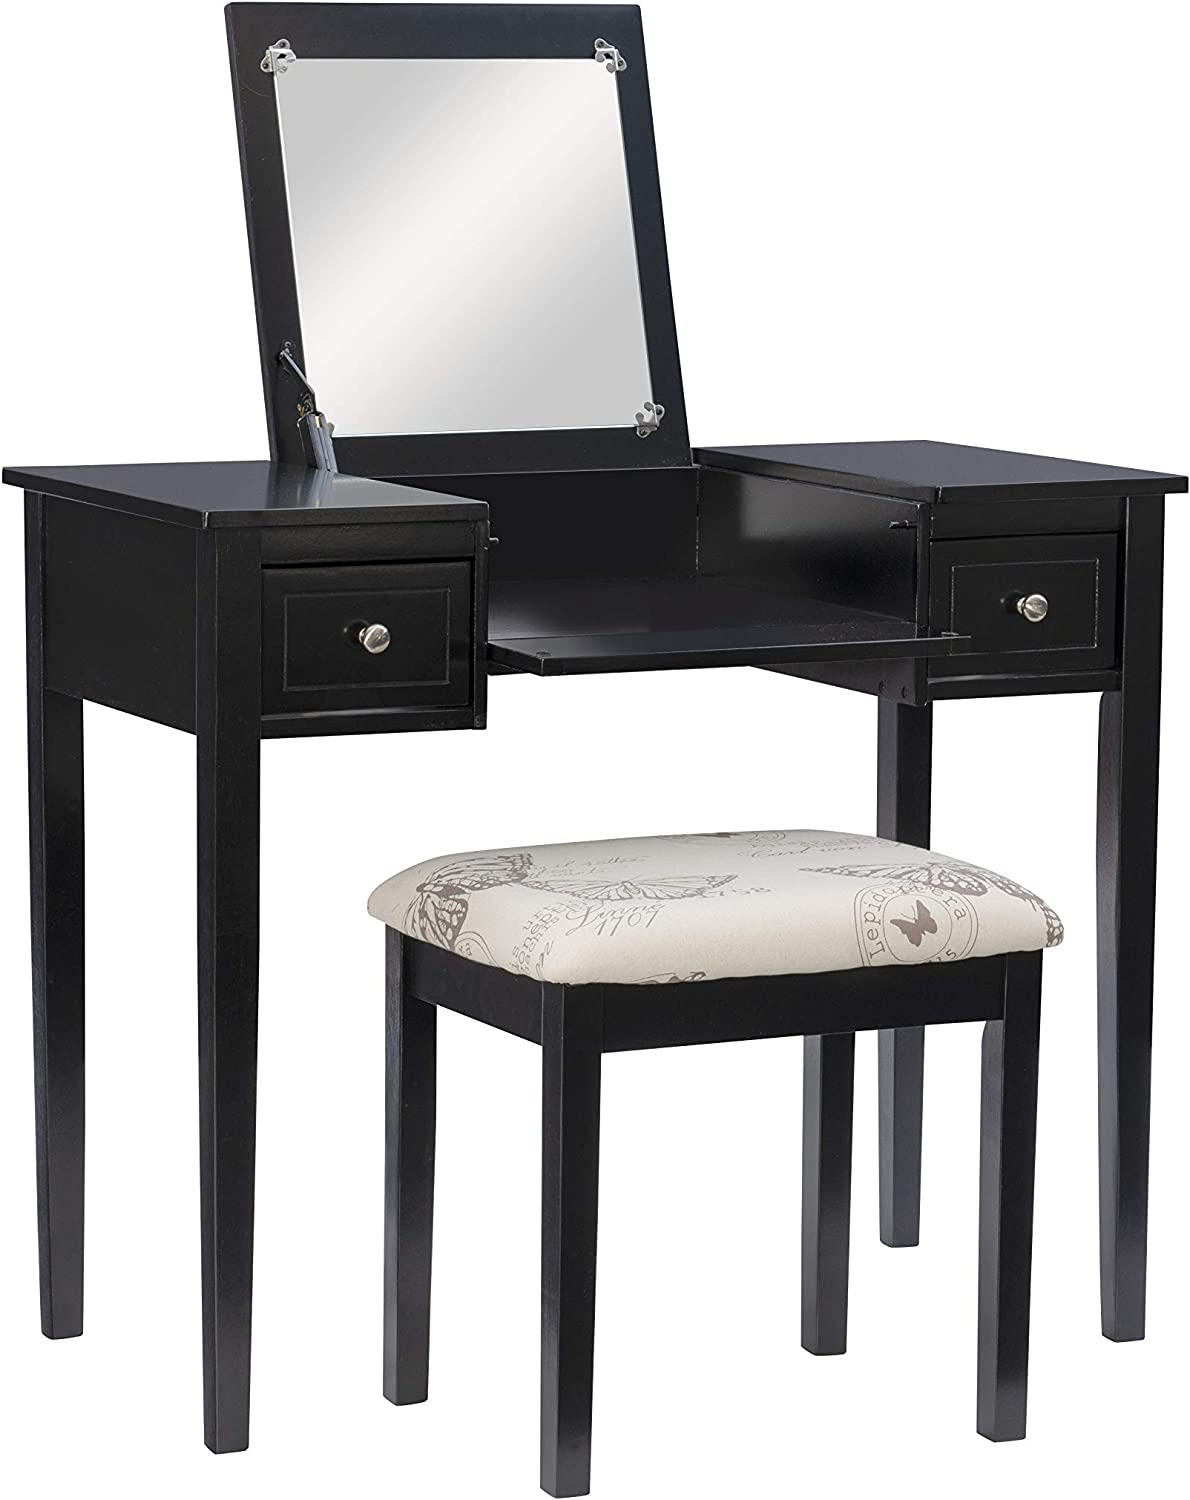 Linon Daily bargain sale Home Milwaukee Mall Dcor Black Butterfly Stool Benc Set with Vanity